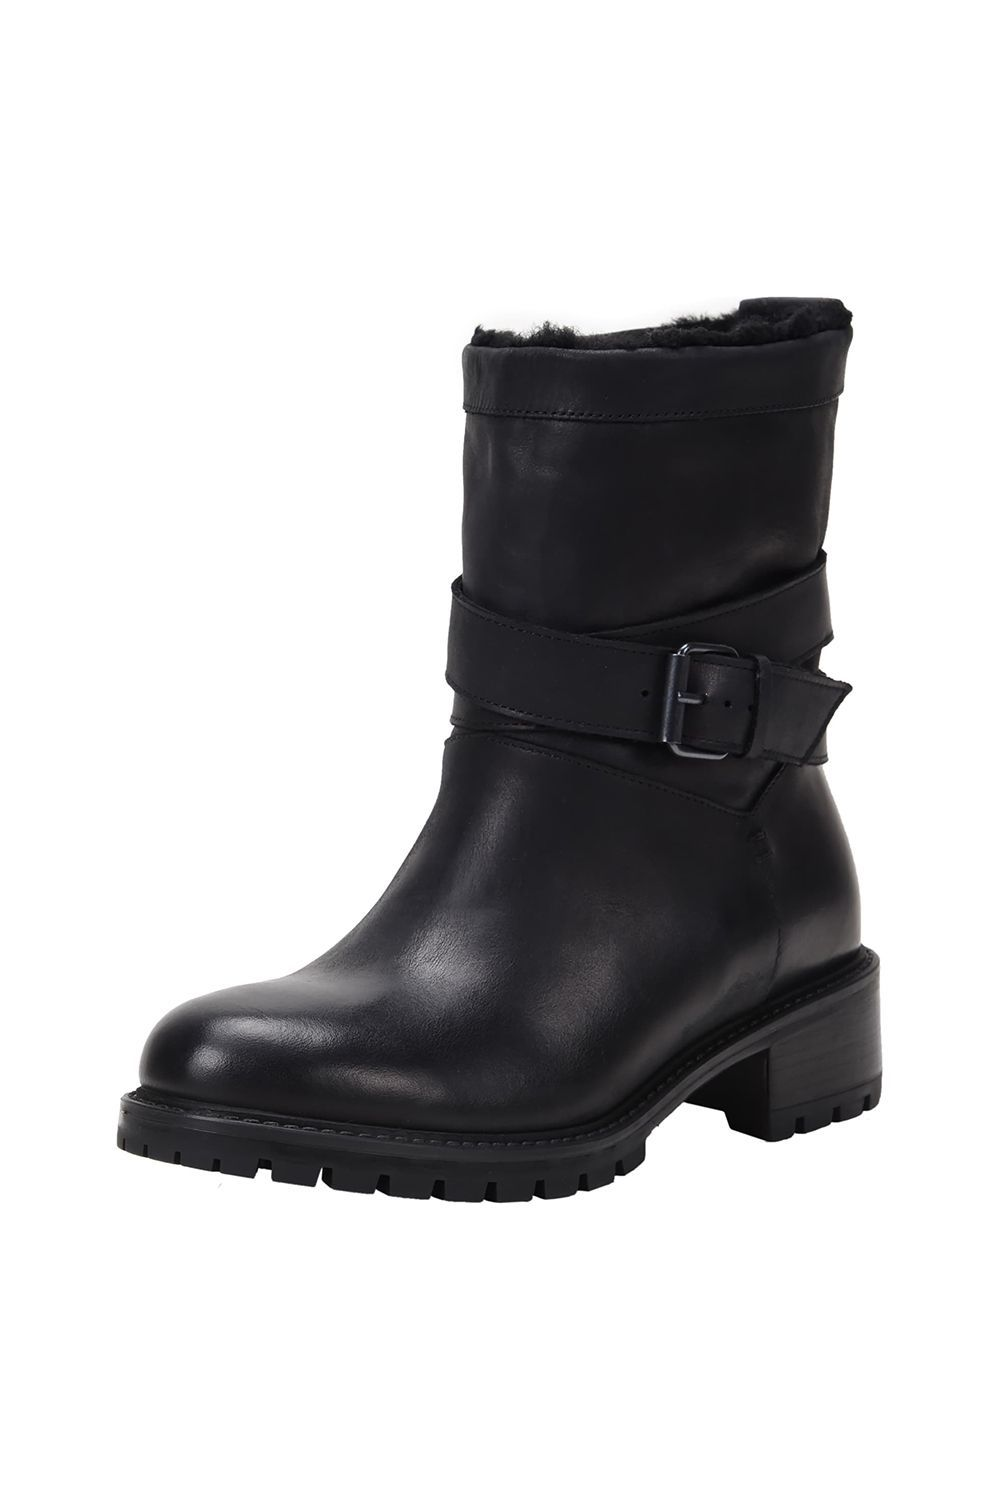 c540436dd9 Genuine Shearling Lined Moto Boot